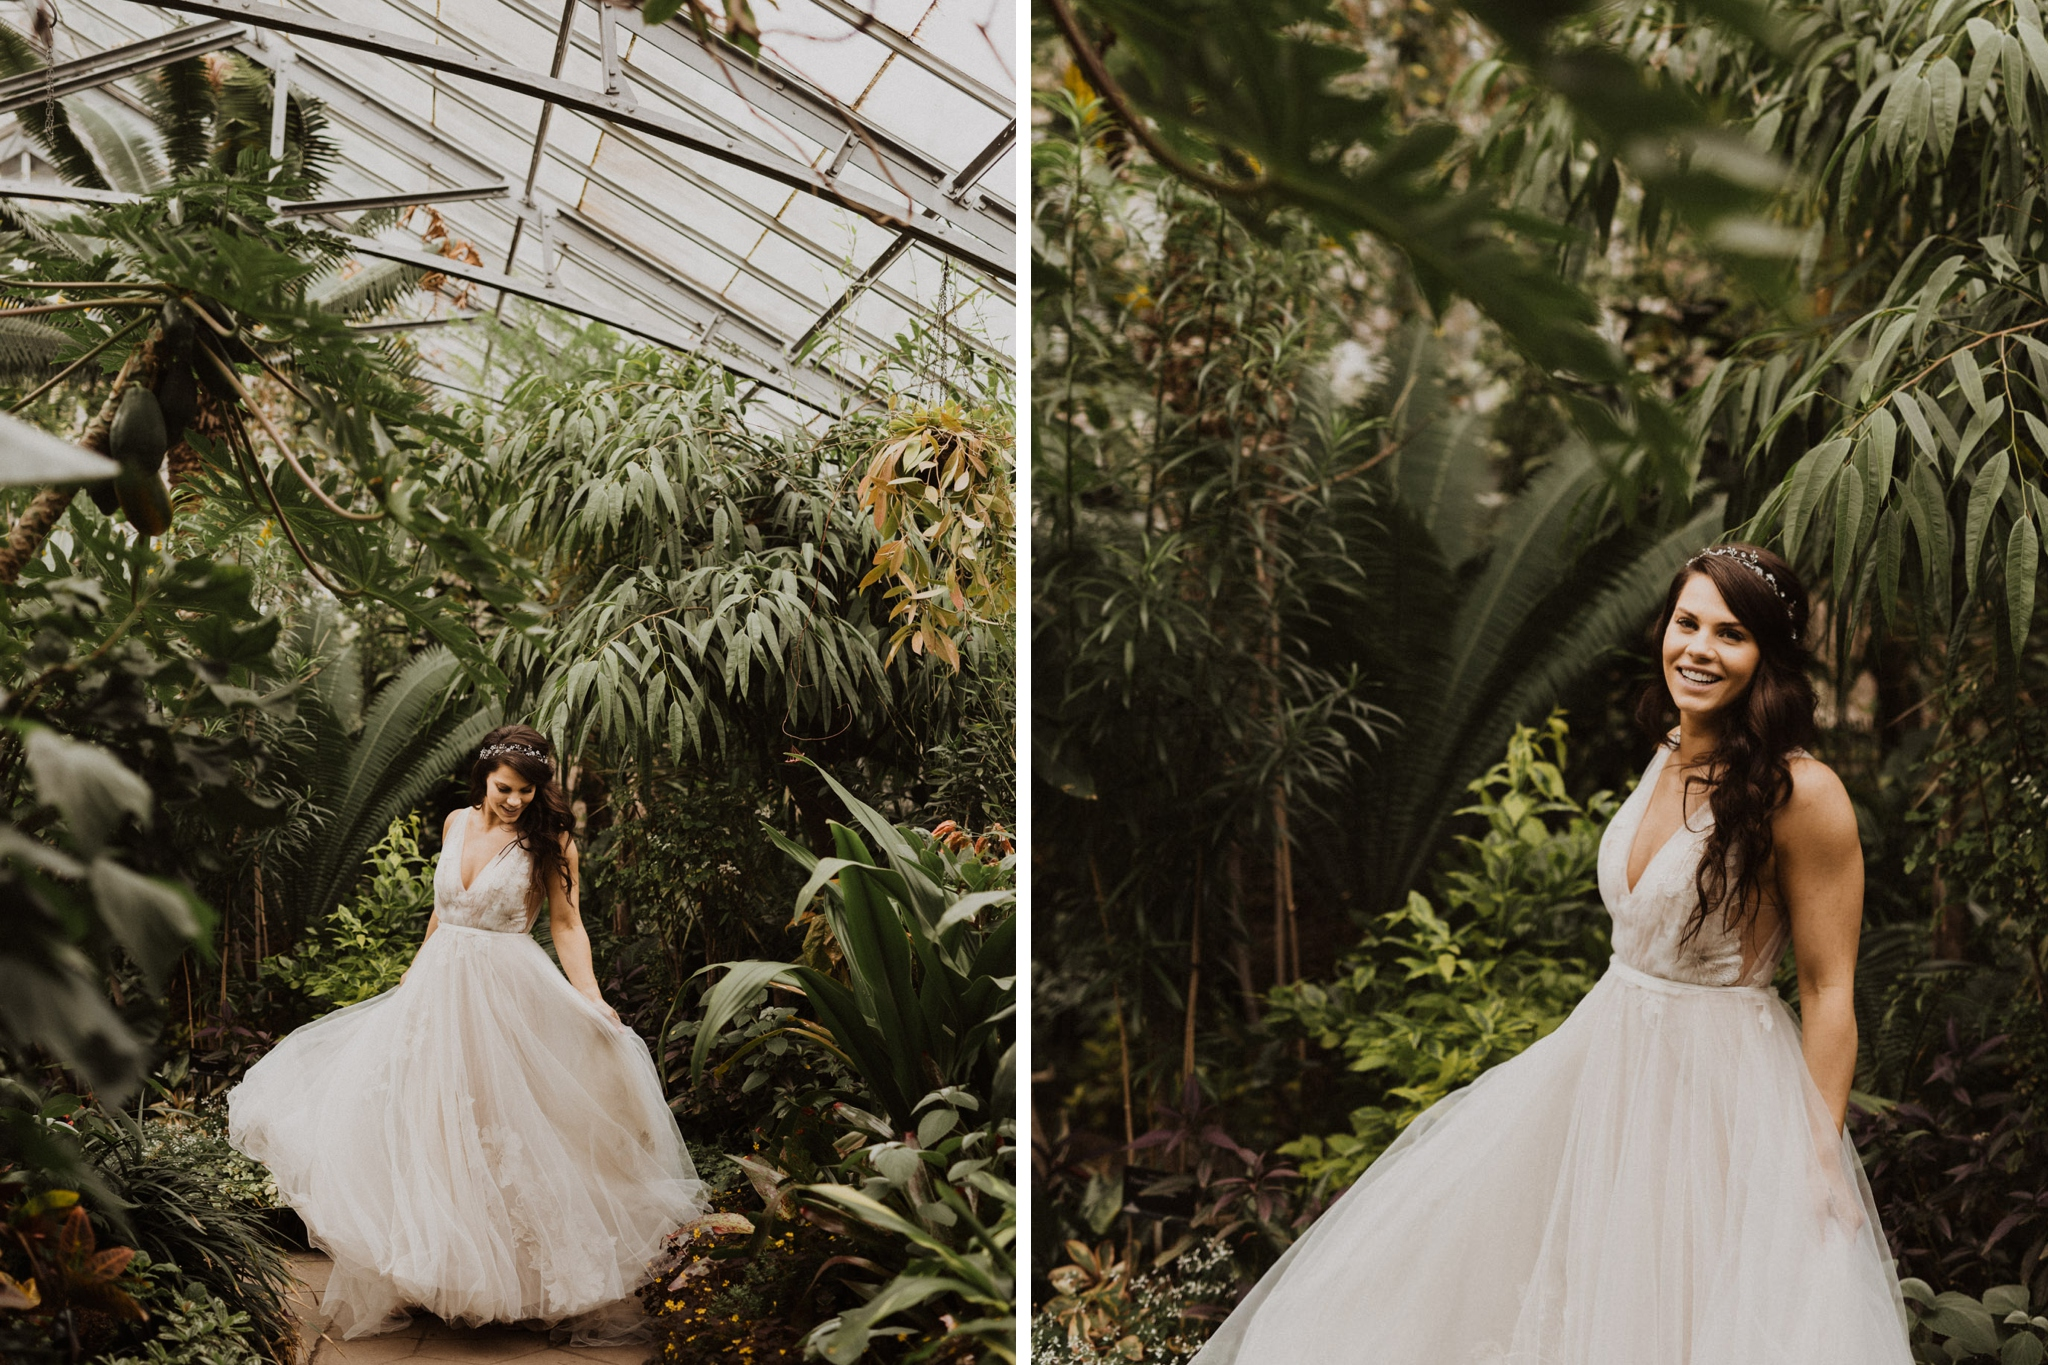 Greenhouse Elopement Allan Gardens Toronto - bride surrounded by plants